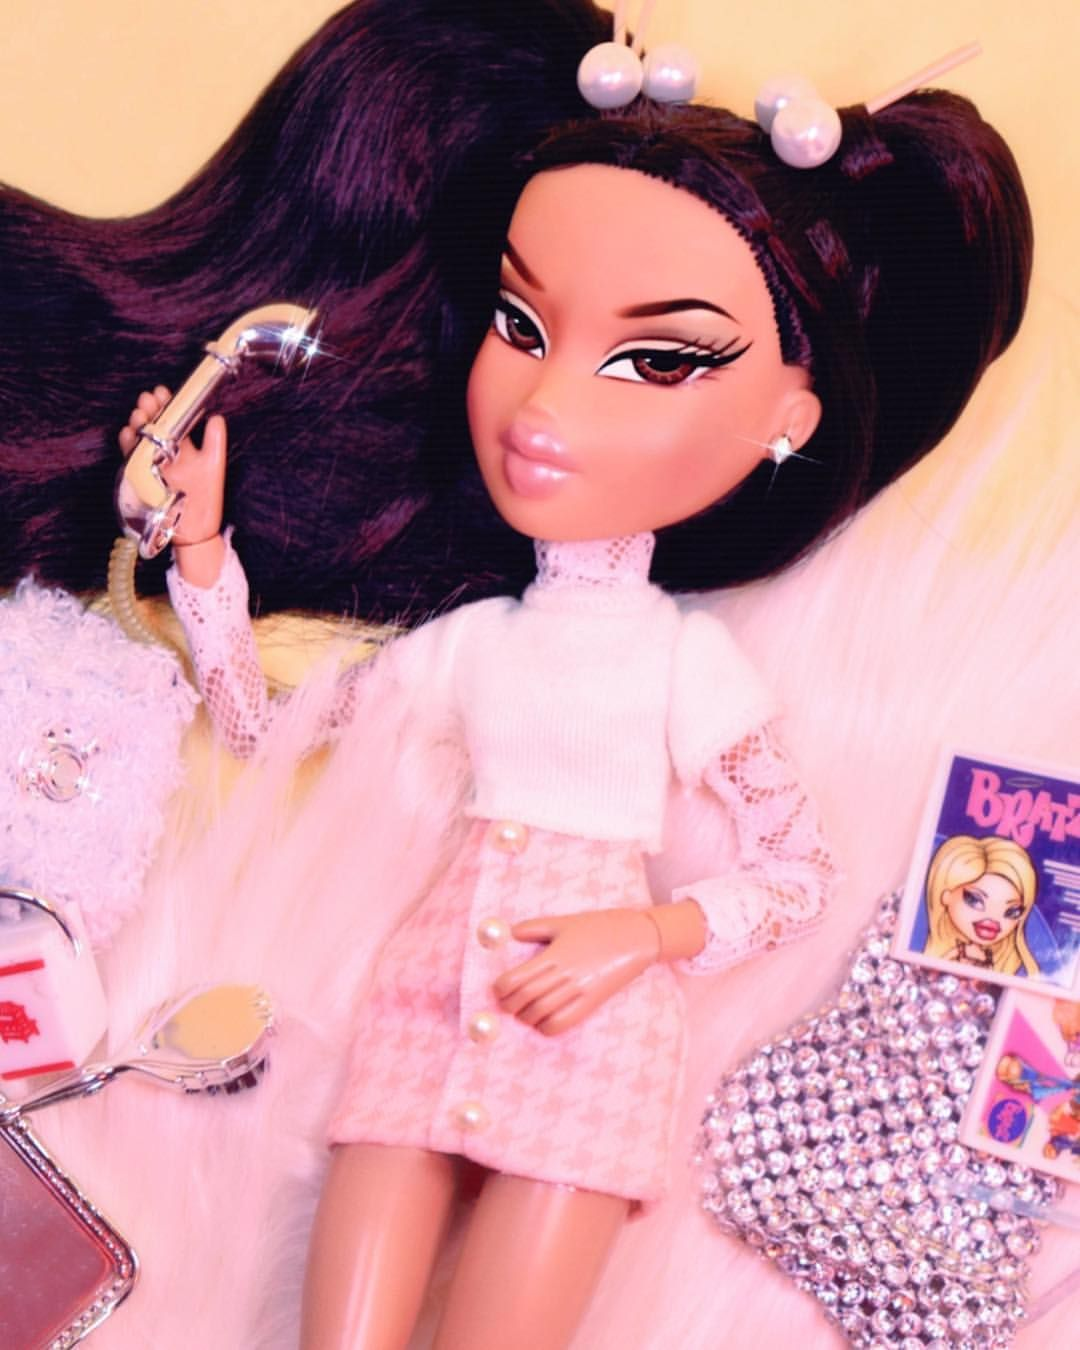 Level Up On Instagram T T Talk To Me Bratz A Realwhores Collab 2 0 Moment Go Check Out Their P Bratz Doll Outfits Black Bratz Doll Bratz Doll